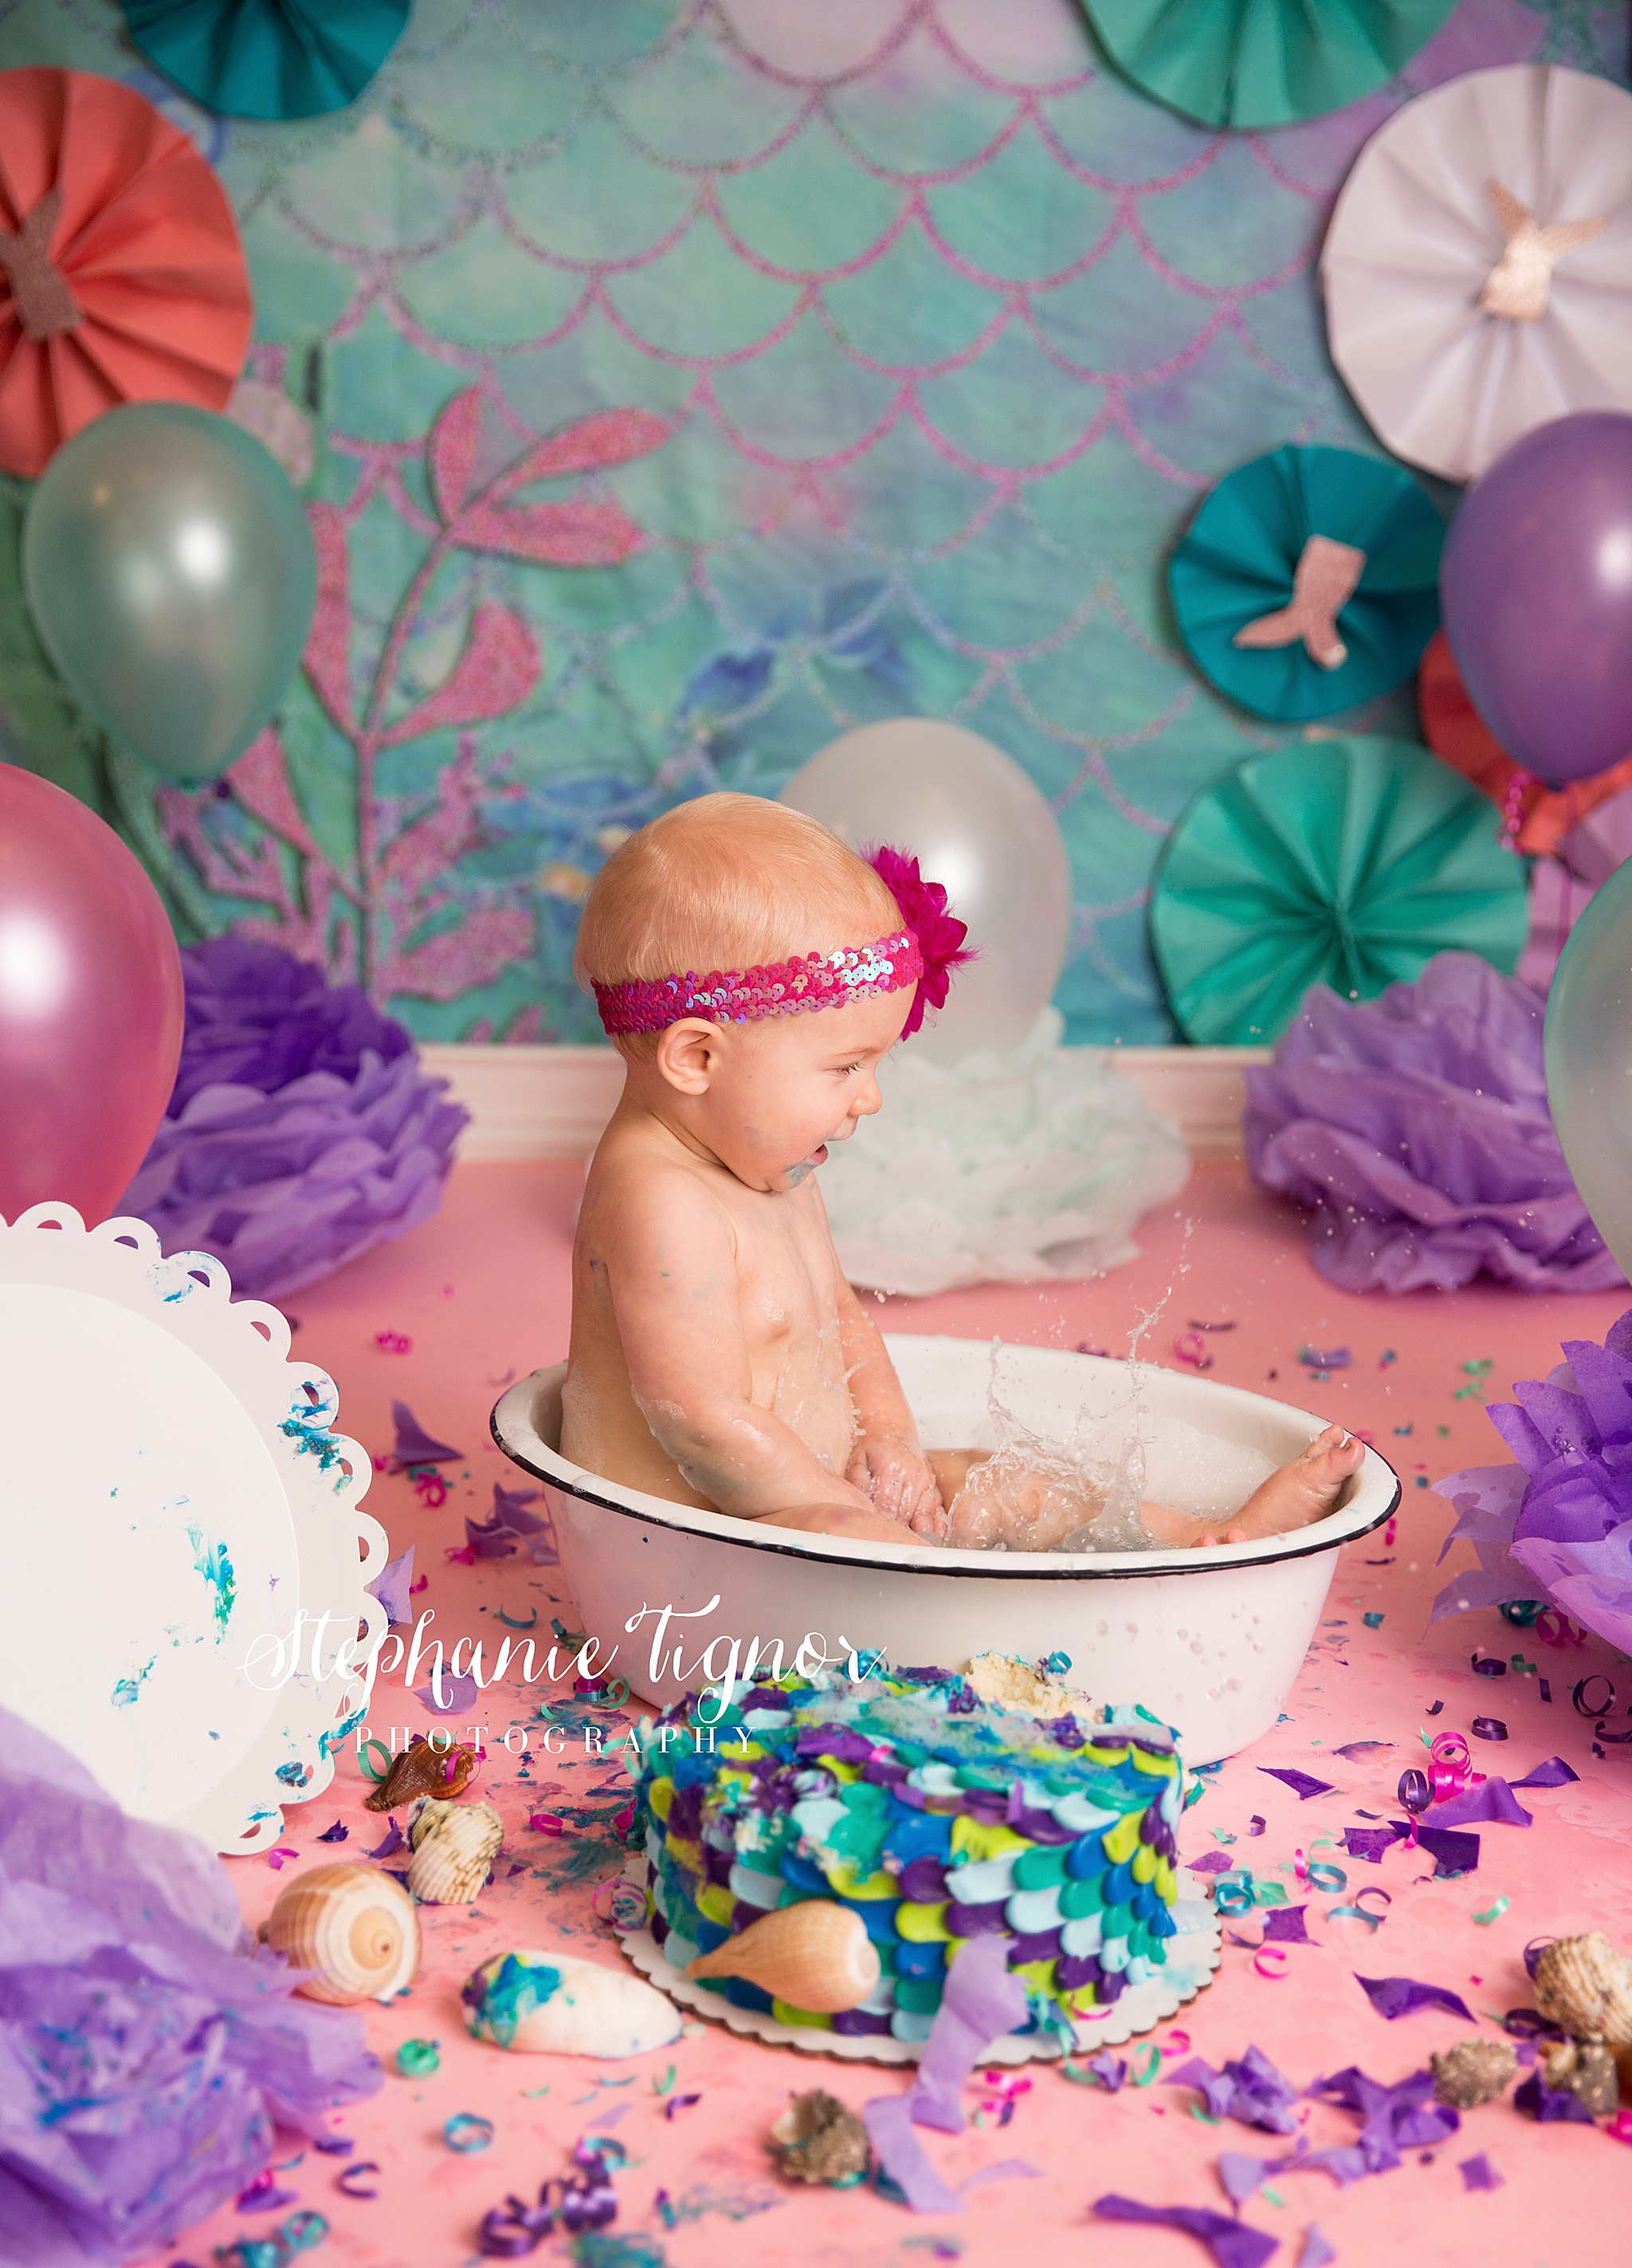 Stephanie Tignor Photography_Cake Smash_0095.jpg